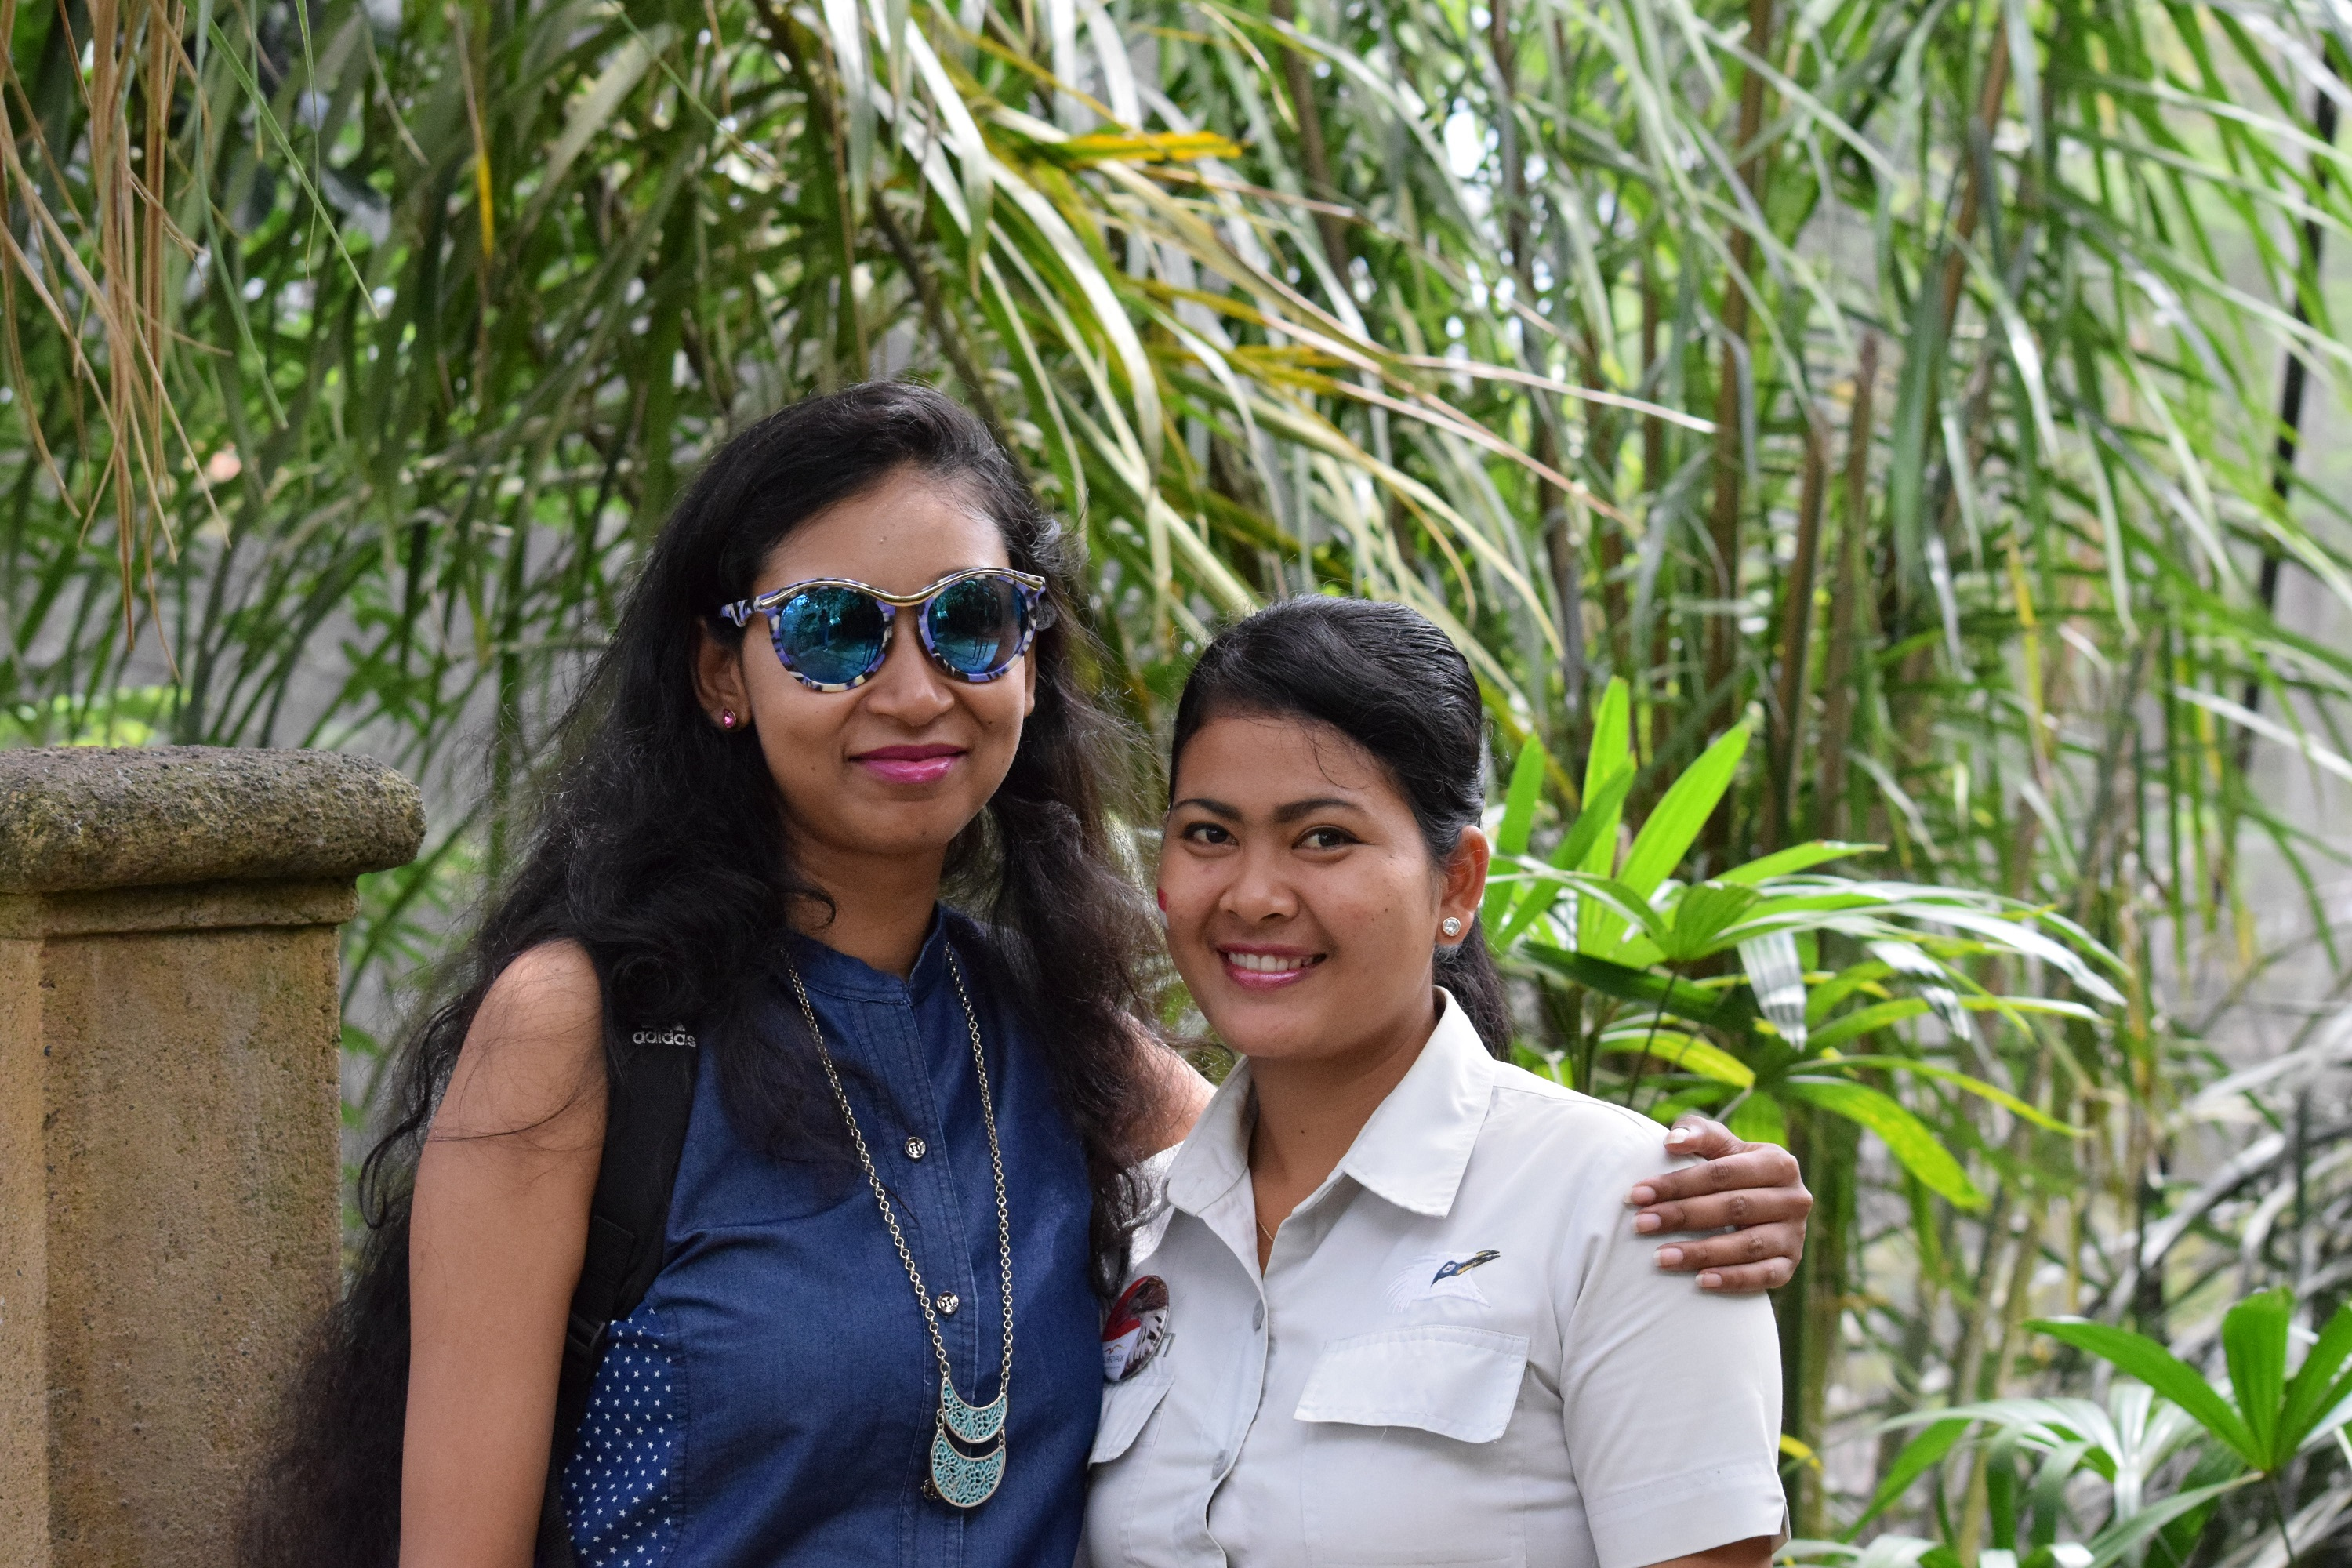 With Shanti, one of the park staff members